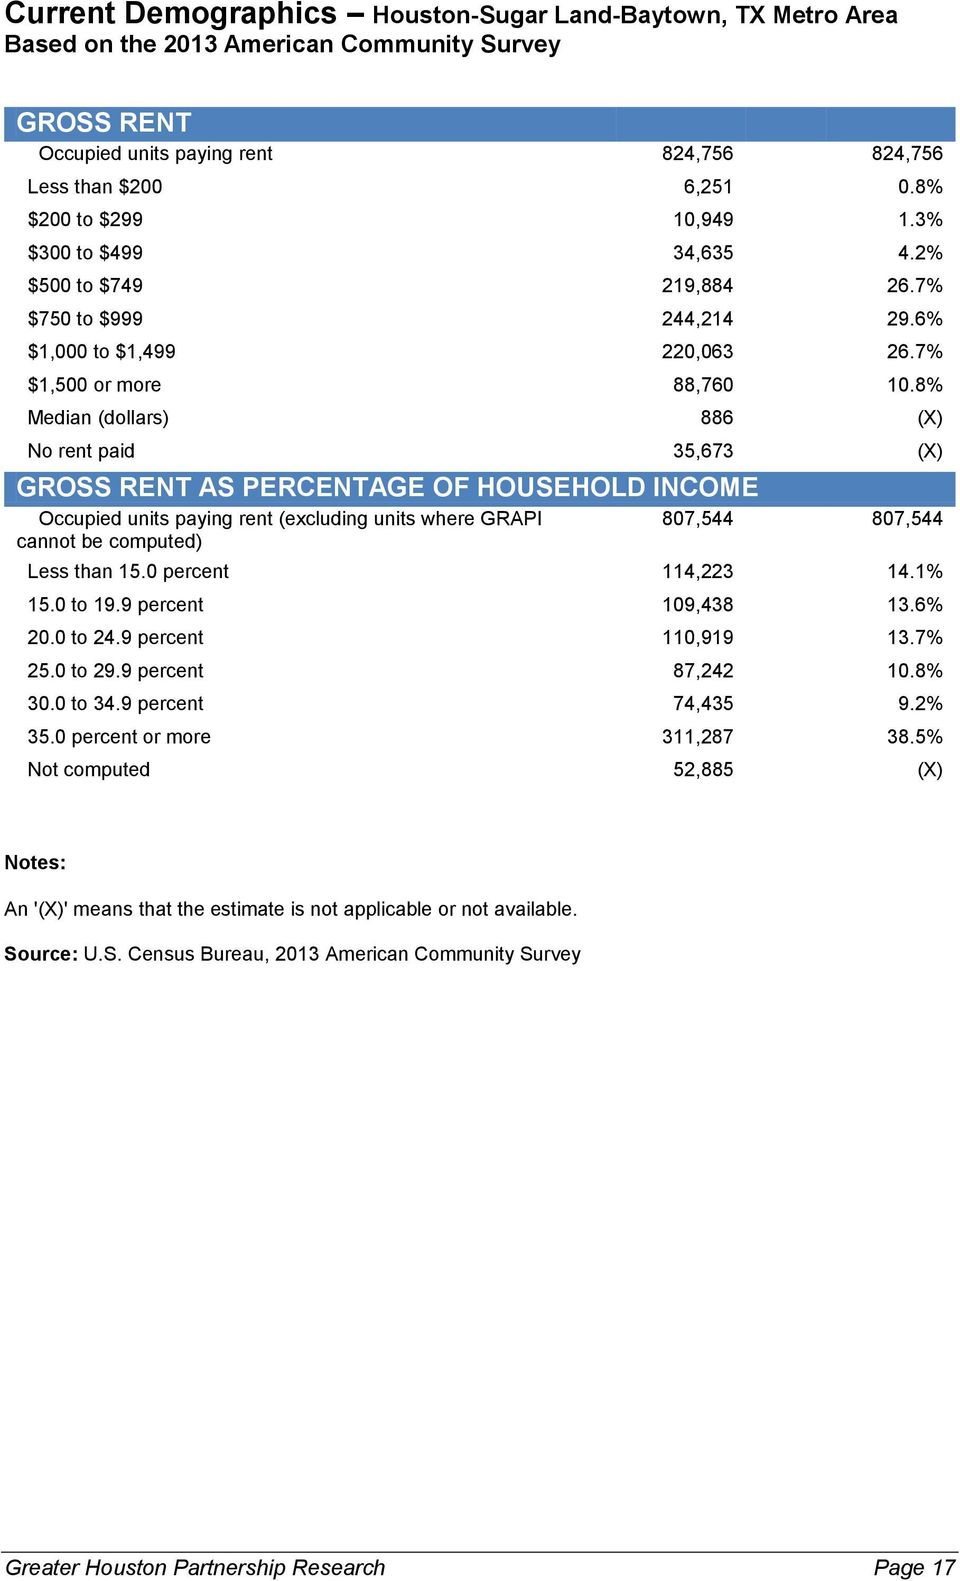 8% Median (dollars) 886 (X) No rent paid 35,673 (X) GROSS RENT AS PERCENTAGE OF HOUSEHOLD INCOME Occupied units paying rent (excluding units where GRAPI cannot be computed) 807,544 807,544 Less than